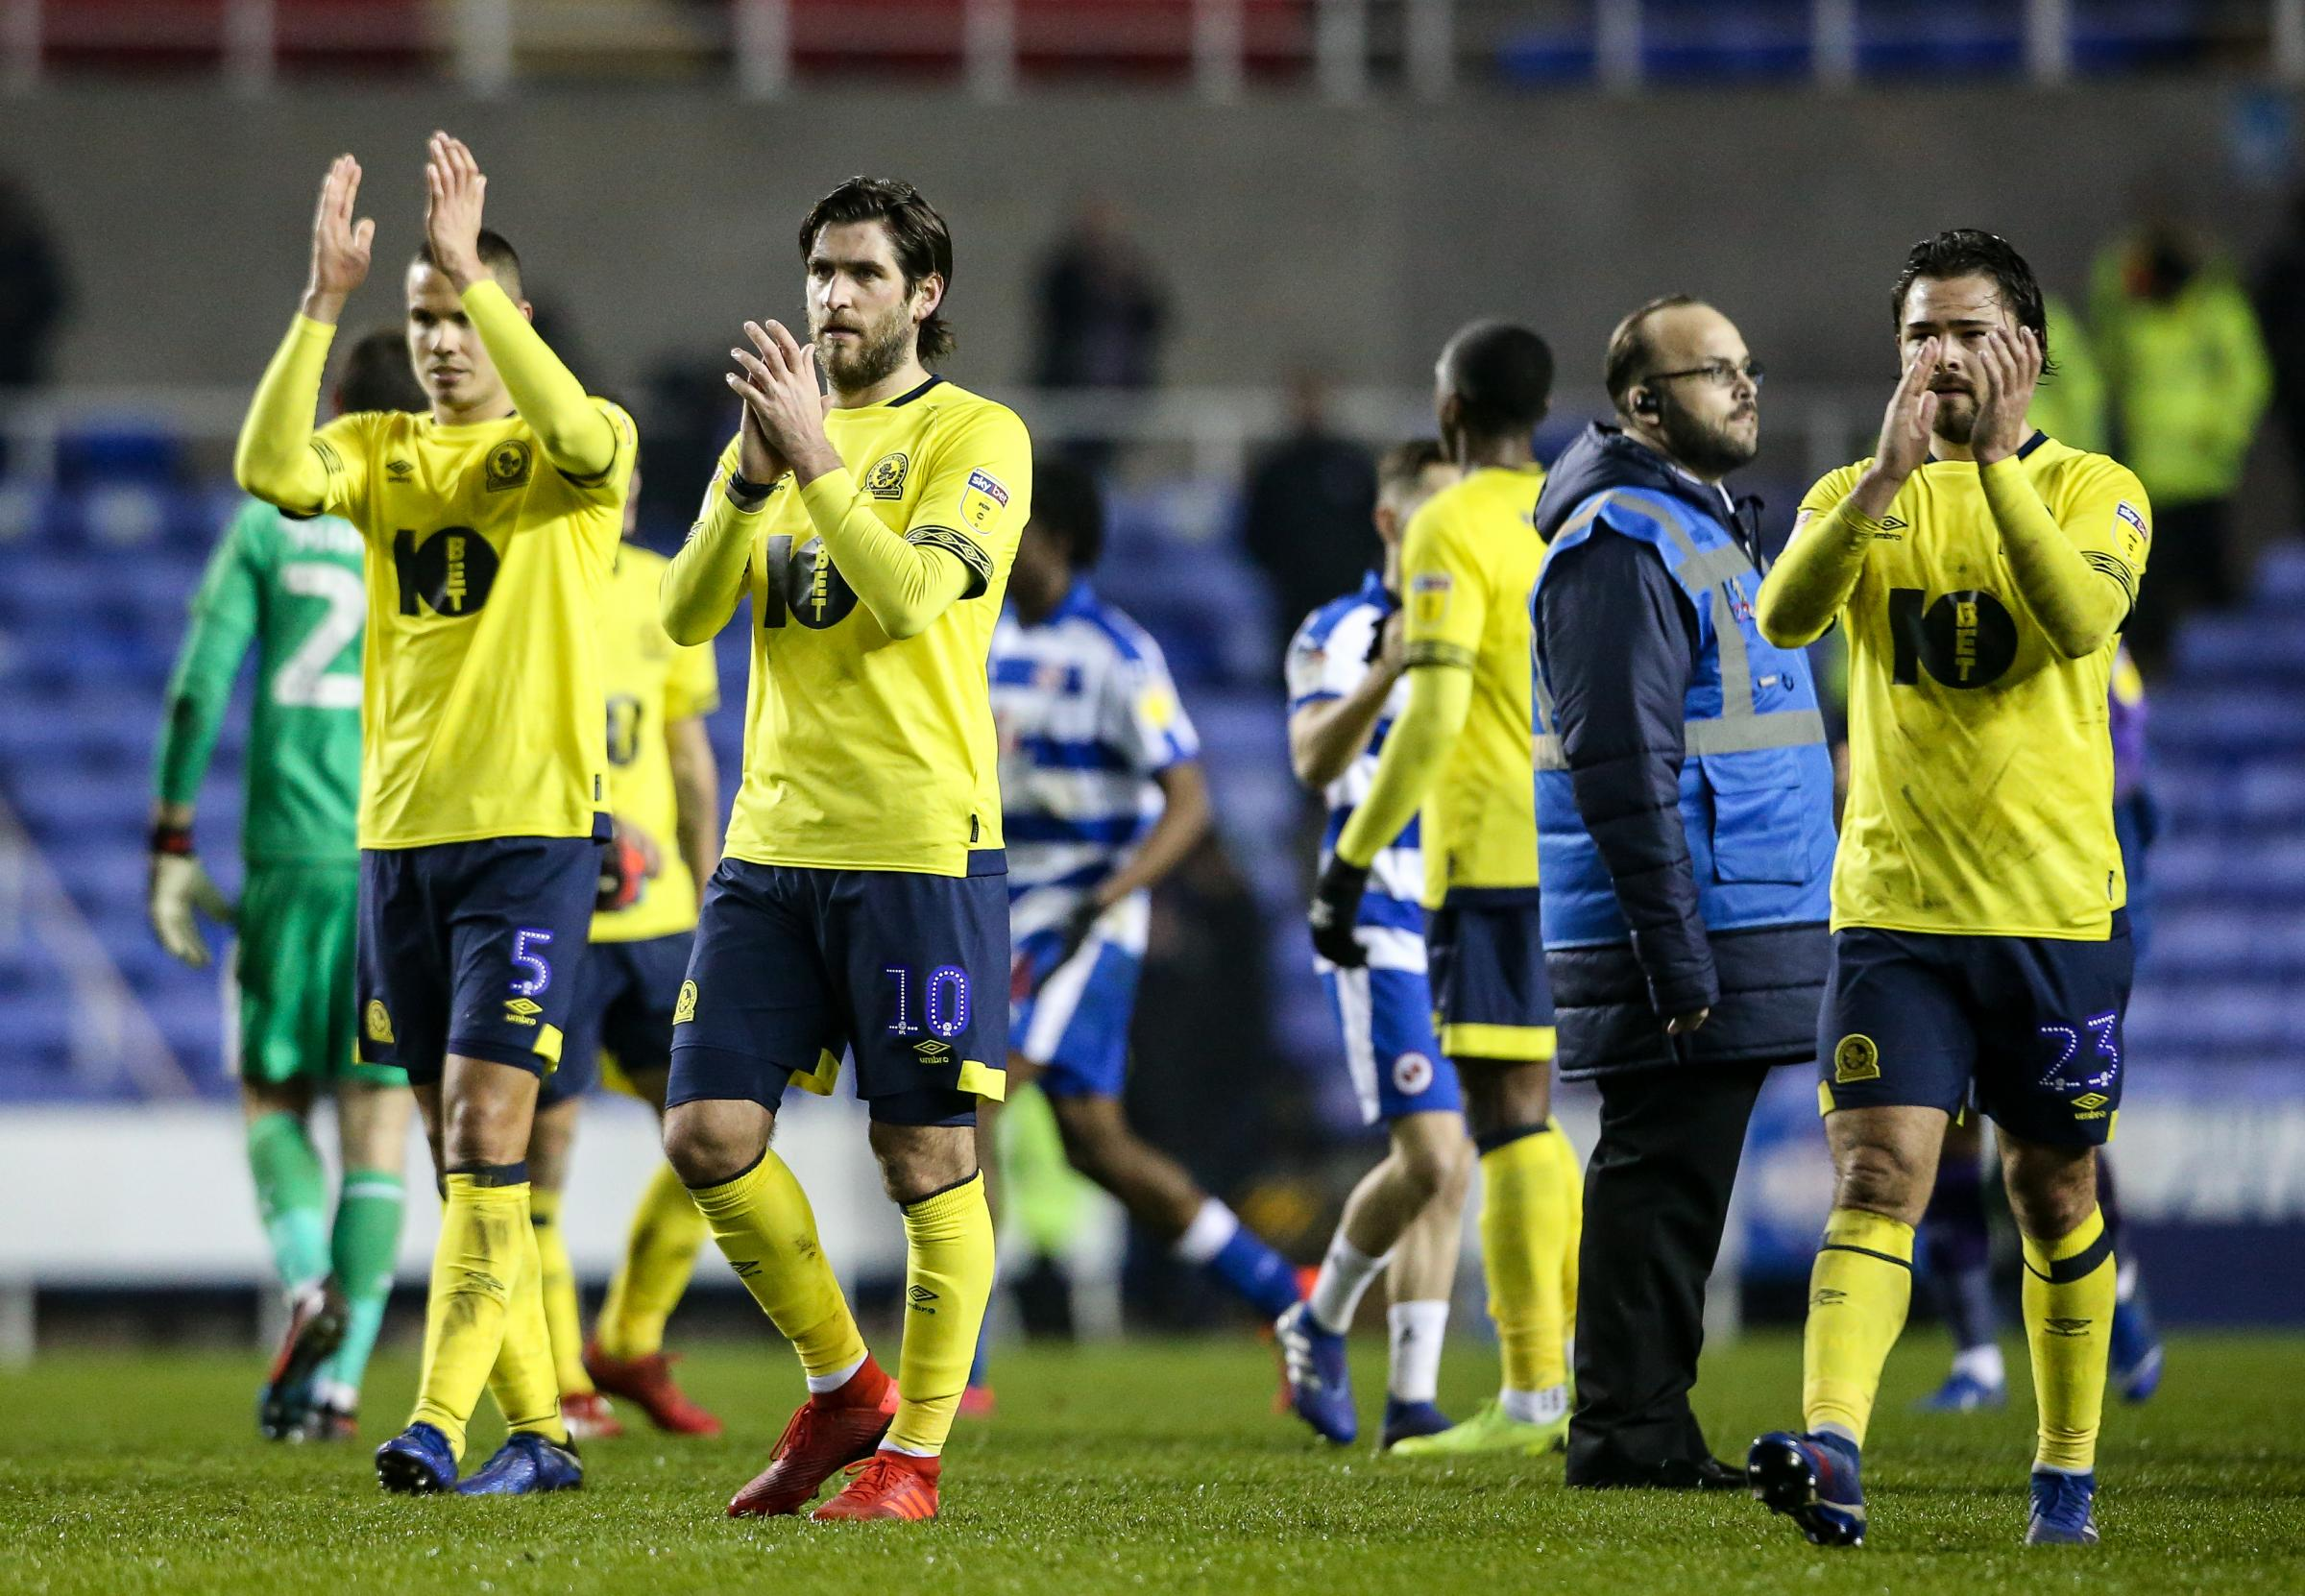 Blackburn Rovers' Jack Rodwell, Danny Graham and Bradley Dack applaud the fans at the end of the teams 2-1 away defeat to Reading. Photographer Andrew Kearns/CameraSport.